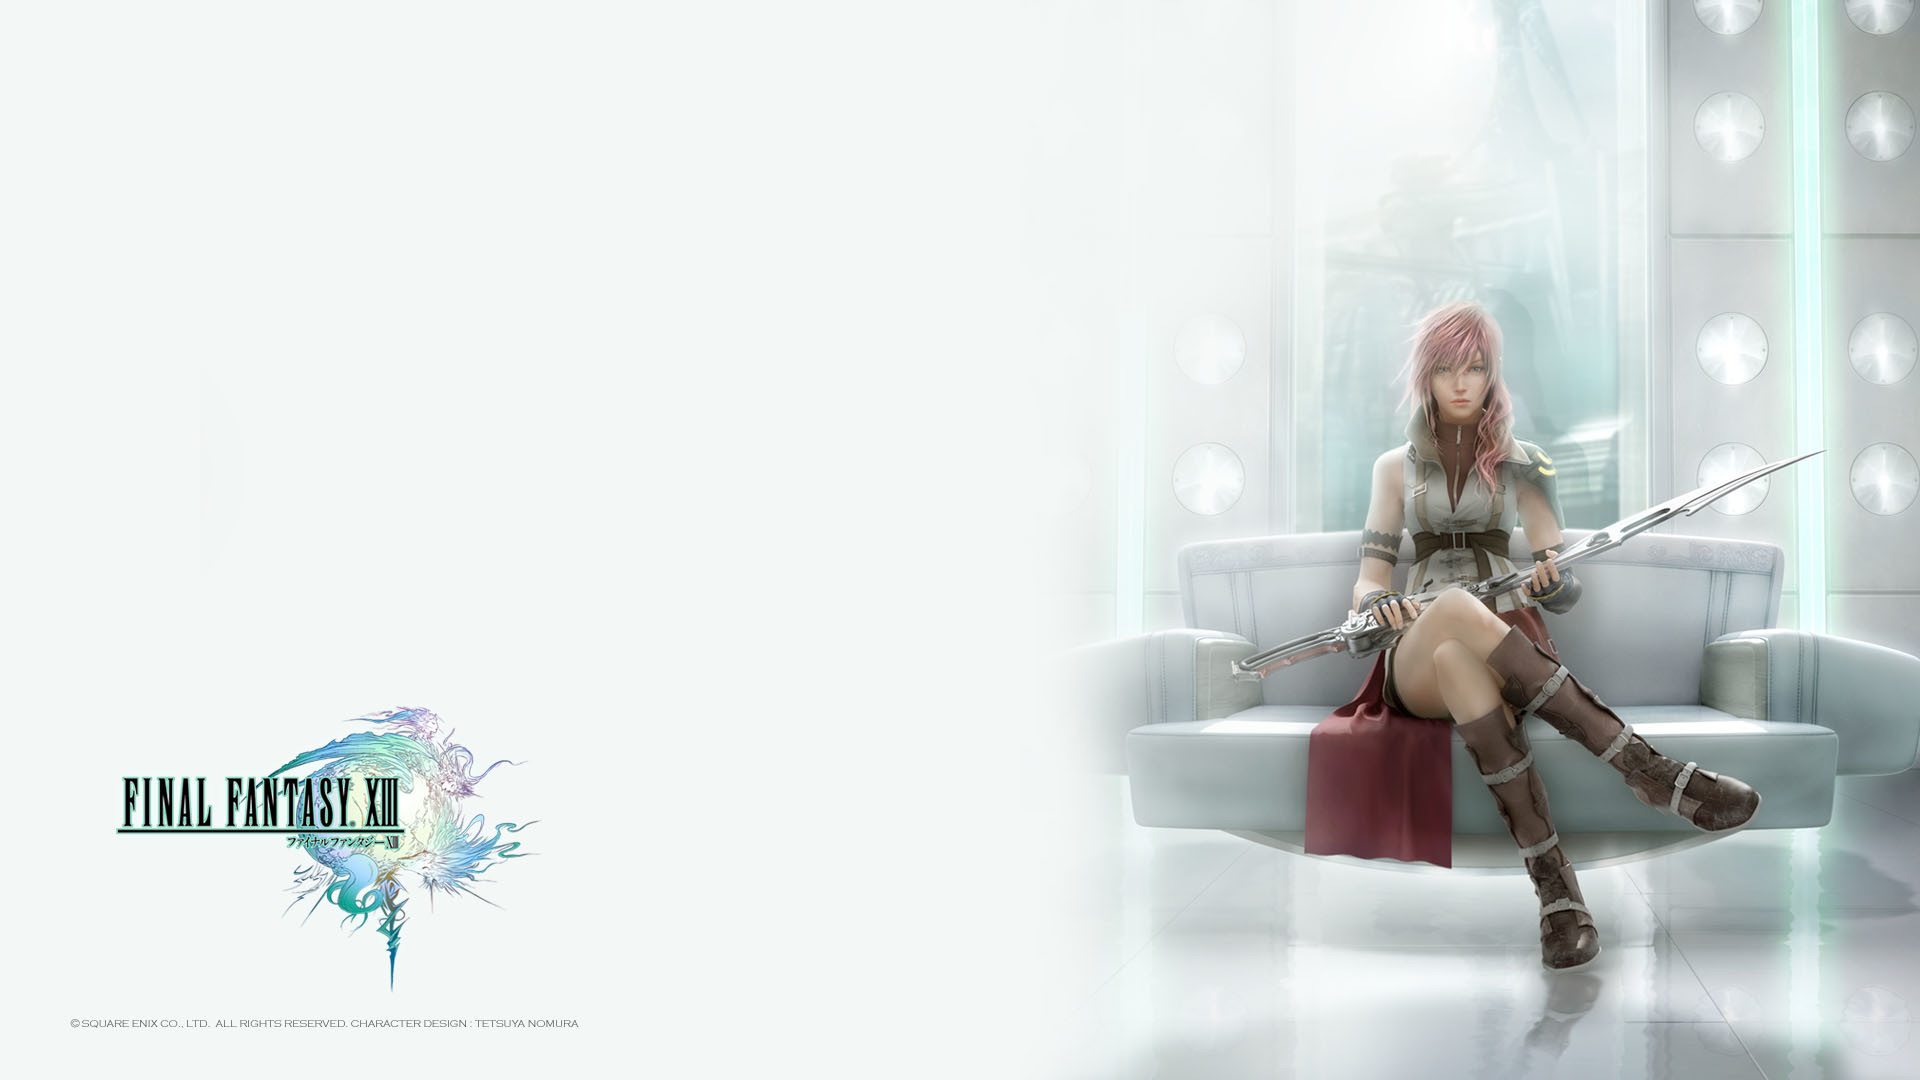 1920x1080 Wallpaper from Final Fantasy XIII